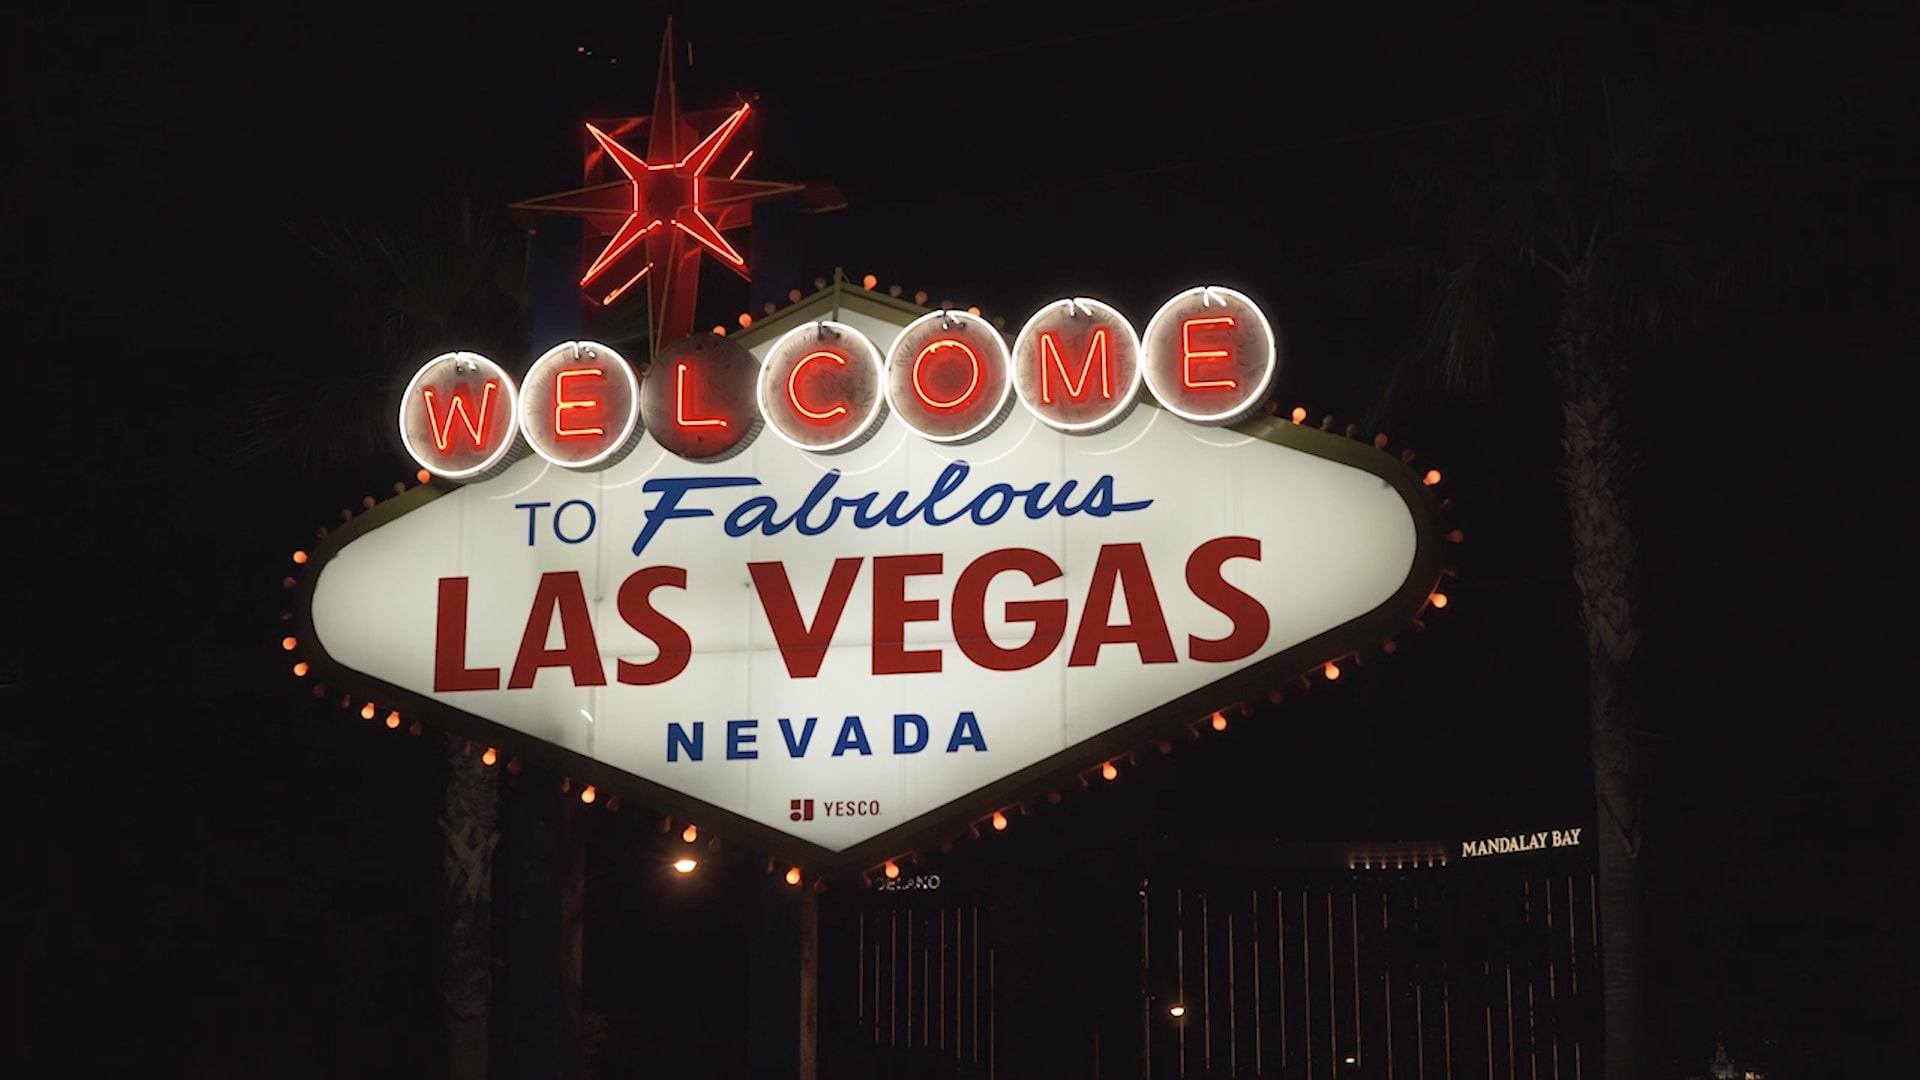 Stock footage welcome to fabulous las vegas sign with flashing lights - Welcome To Fabulous Las Vegas Everything You Need To Know About The Sign